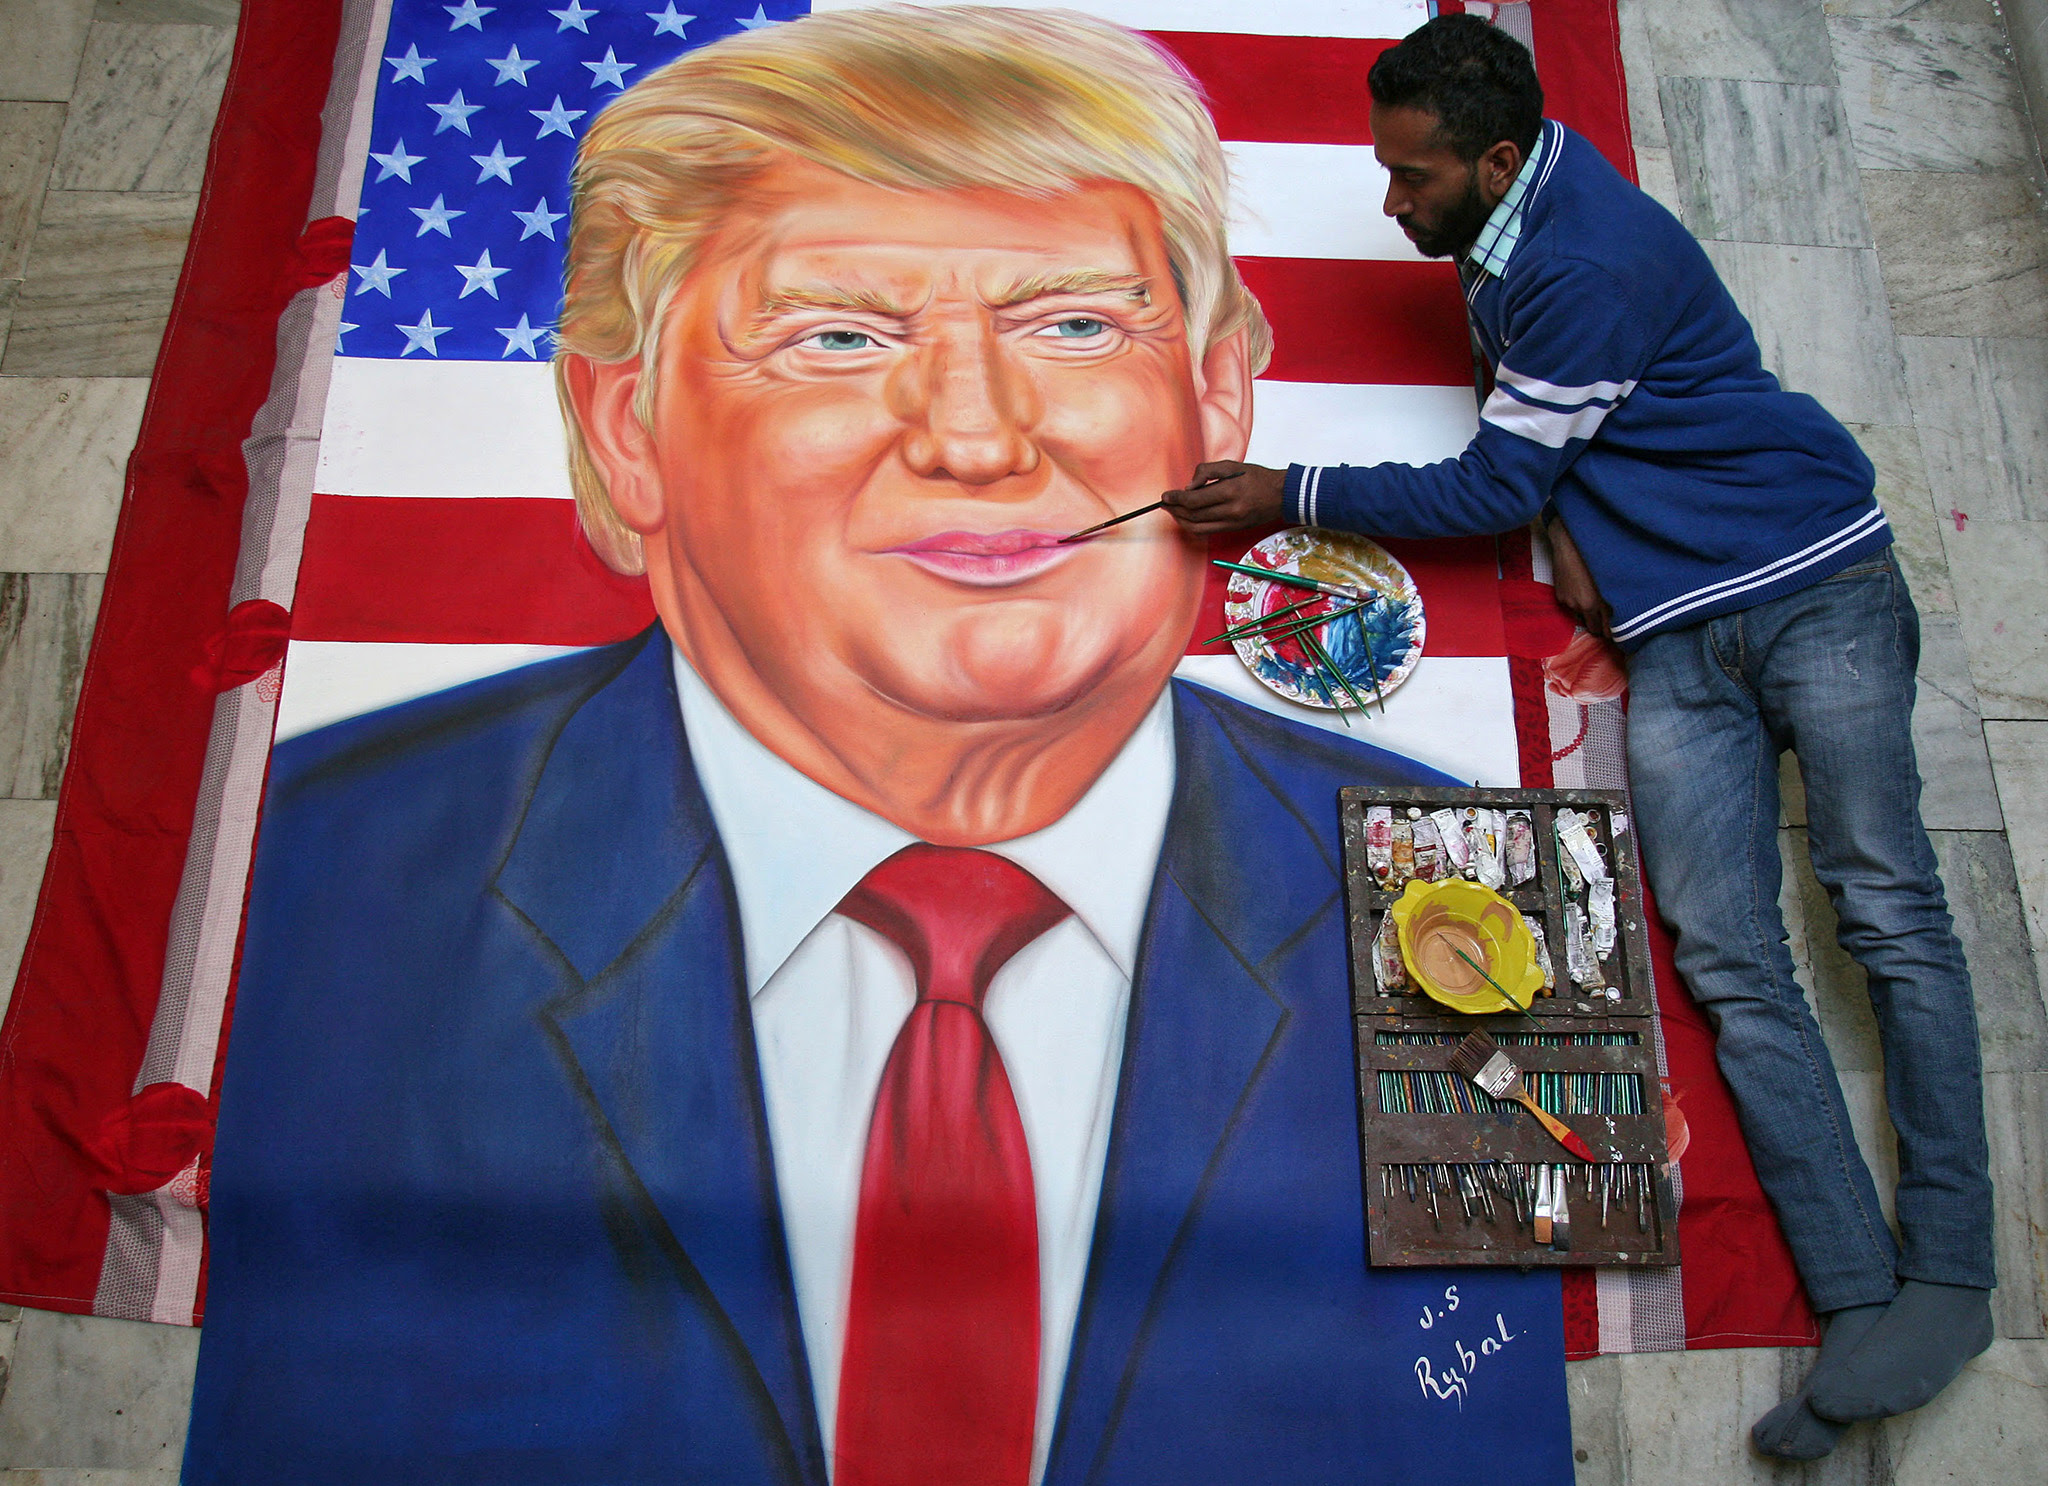 Jagjot Singh Rubal, an Indian artist, gives final touches to a portrait of U.S. President-elect Donald Trump ahead of Trump's inauguration at his workshop in Amritsar, India, January 19, 2017. REUTERS/Munish Sharma FOR EDITORIAL USE ONLY. NO RESALES. NO ARCHIVES.